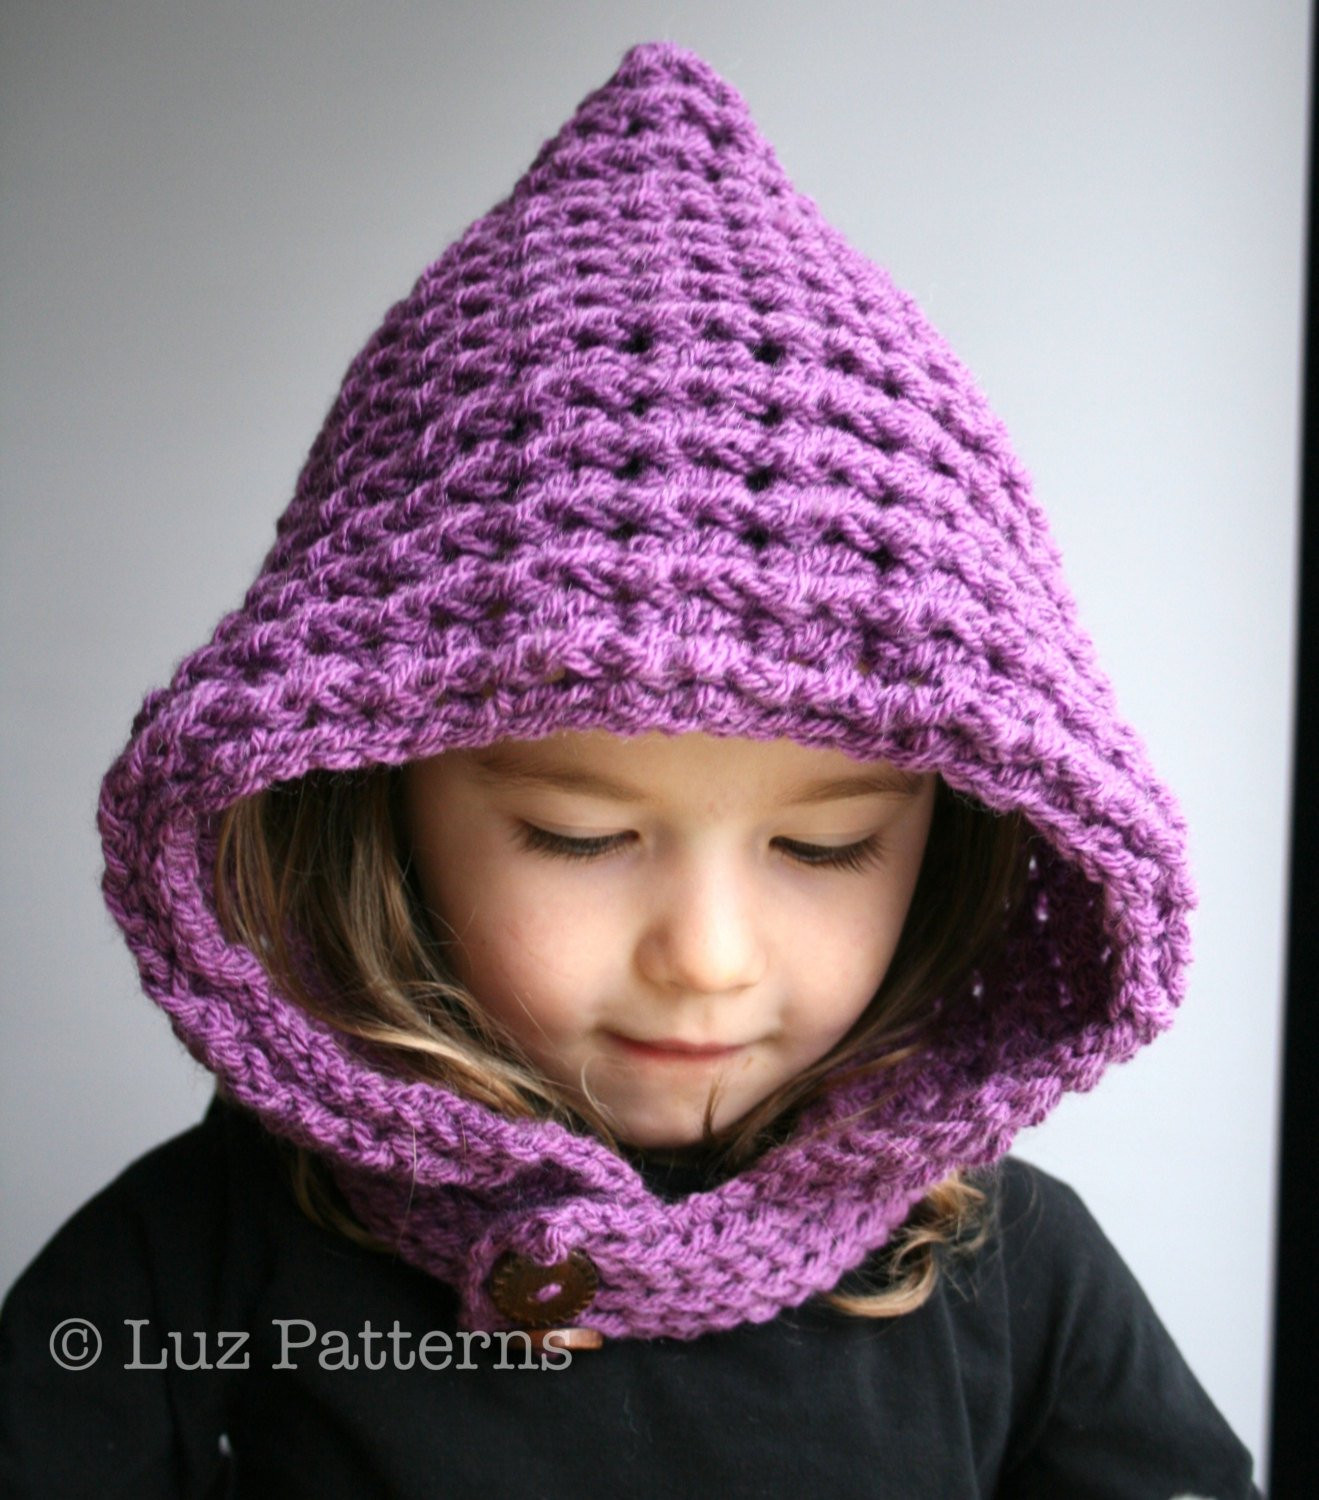 Lovely Crochet Patterns Crochet Hat Pattern Hoo Crochet Pattern Crochet Hoodie Pattern Of Perfect 41 Pictures Crochet Hoodie Pattern